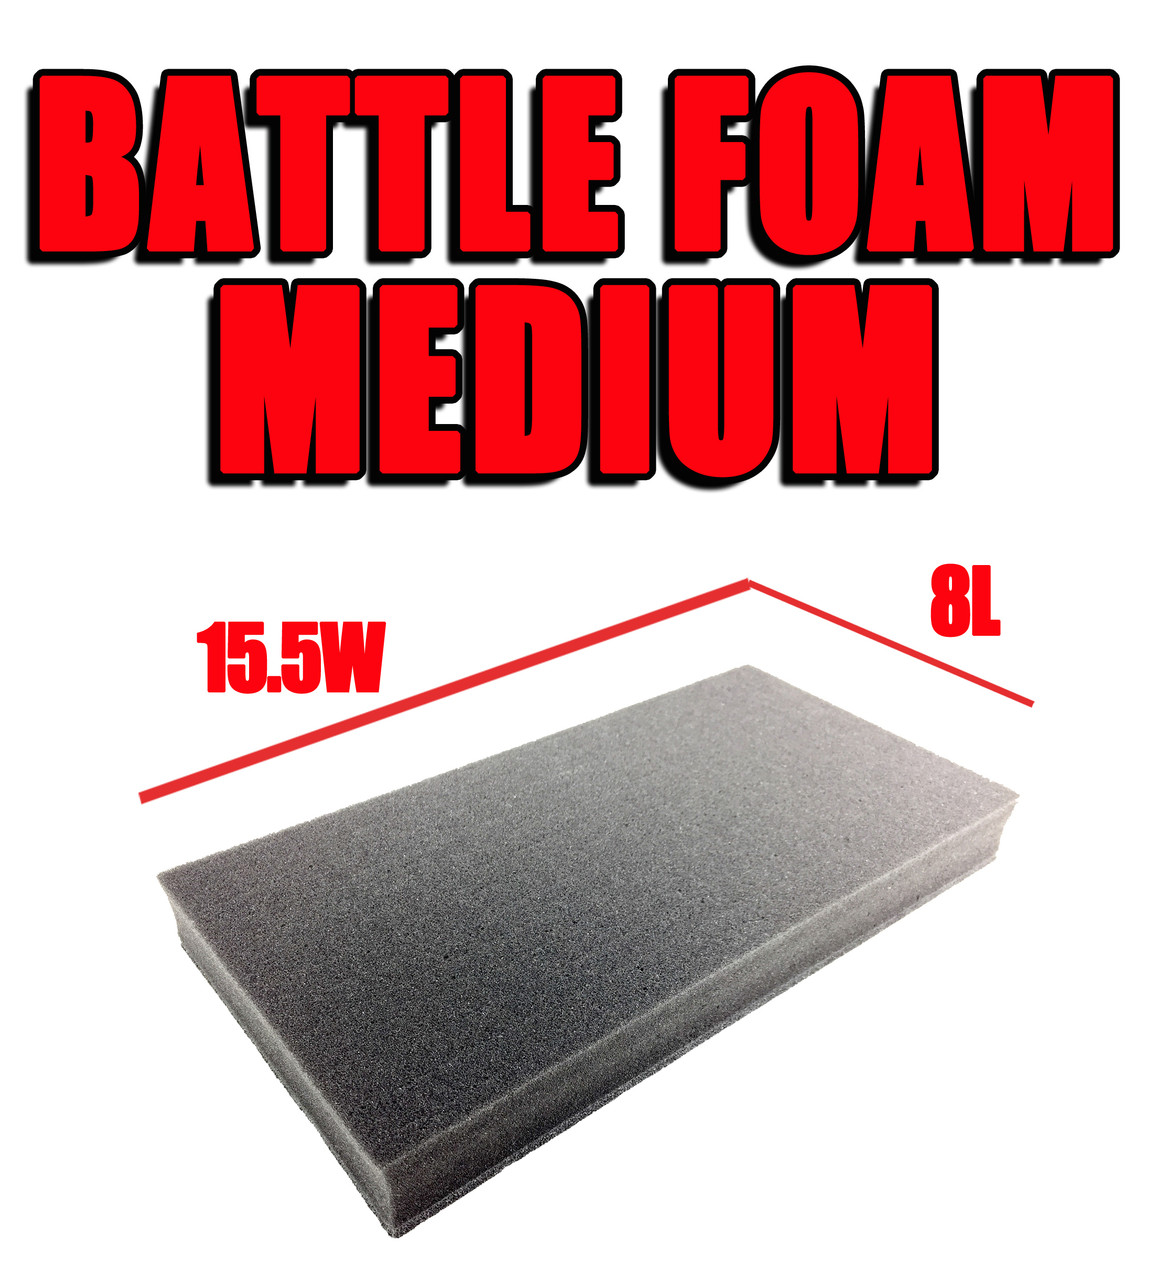 Battle Foam Medium (15.5W x 8L)